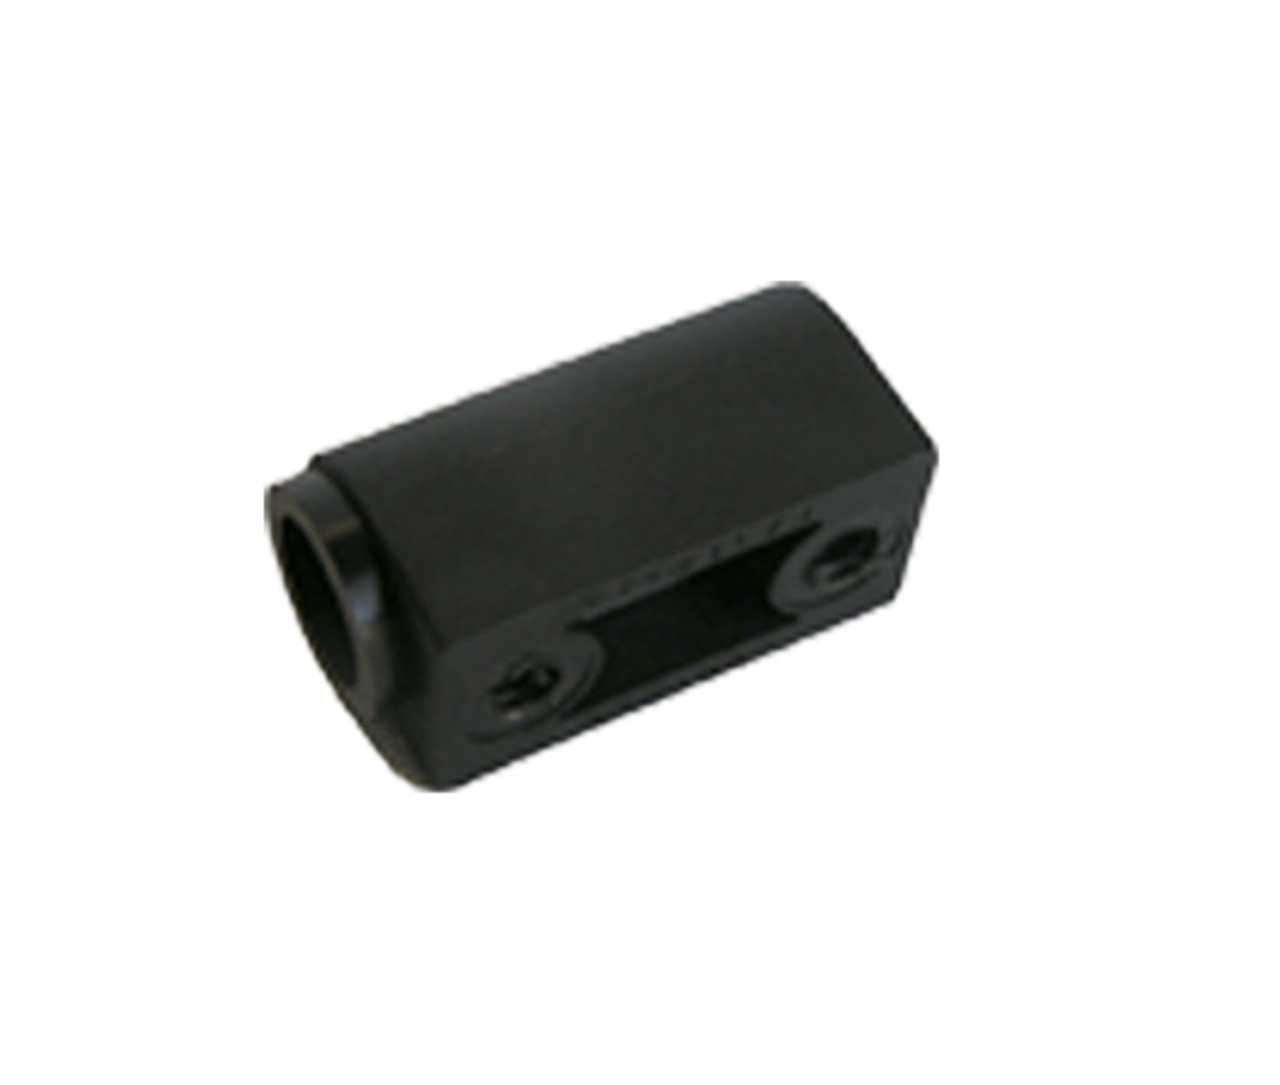 D00402 - Black Plastic Door Hinge, Female half